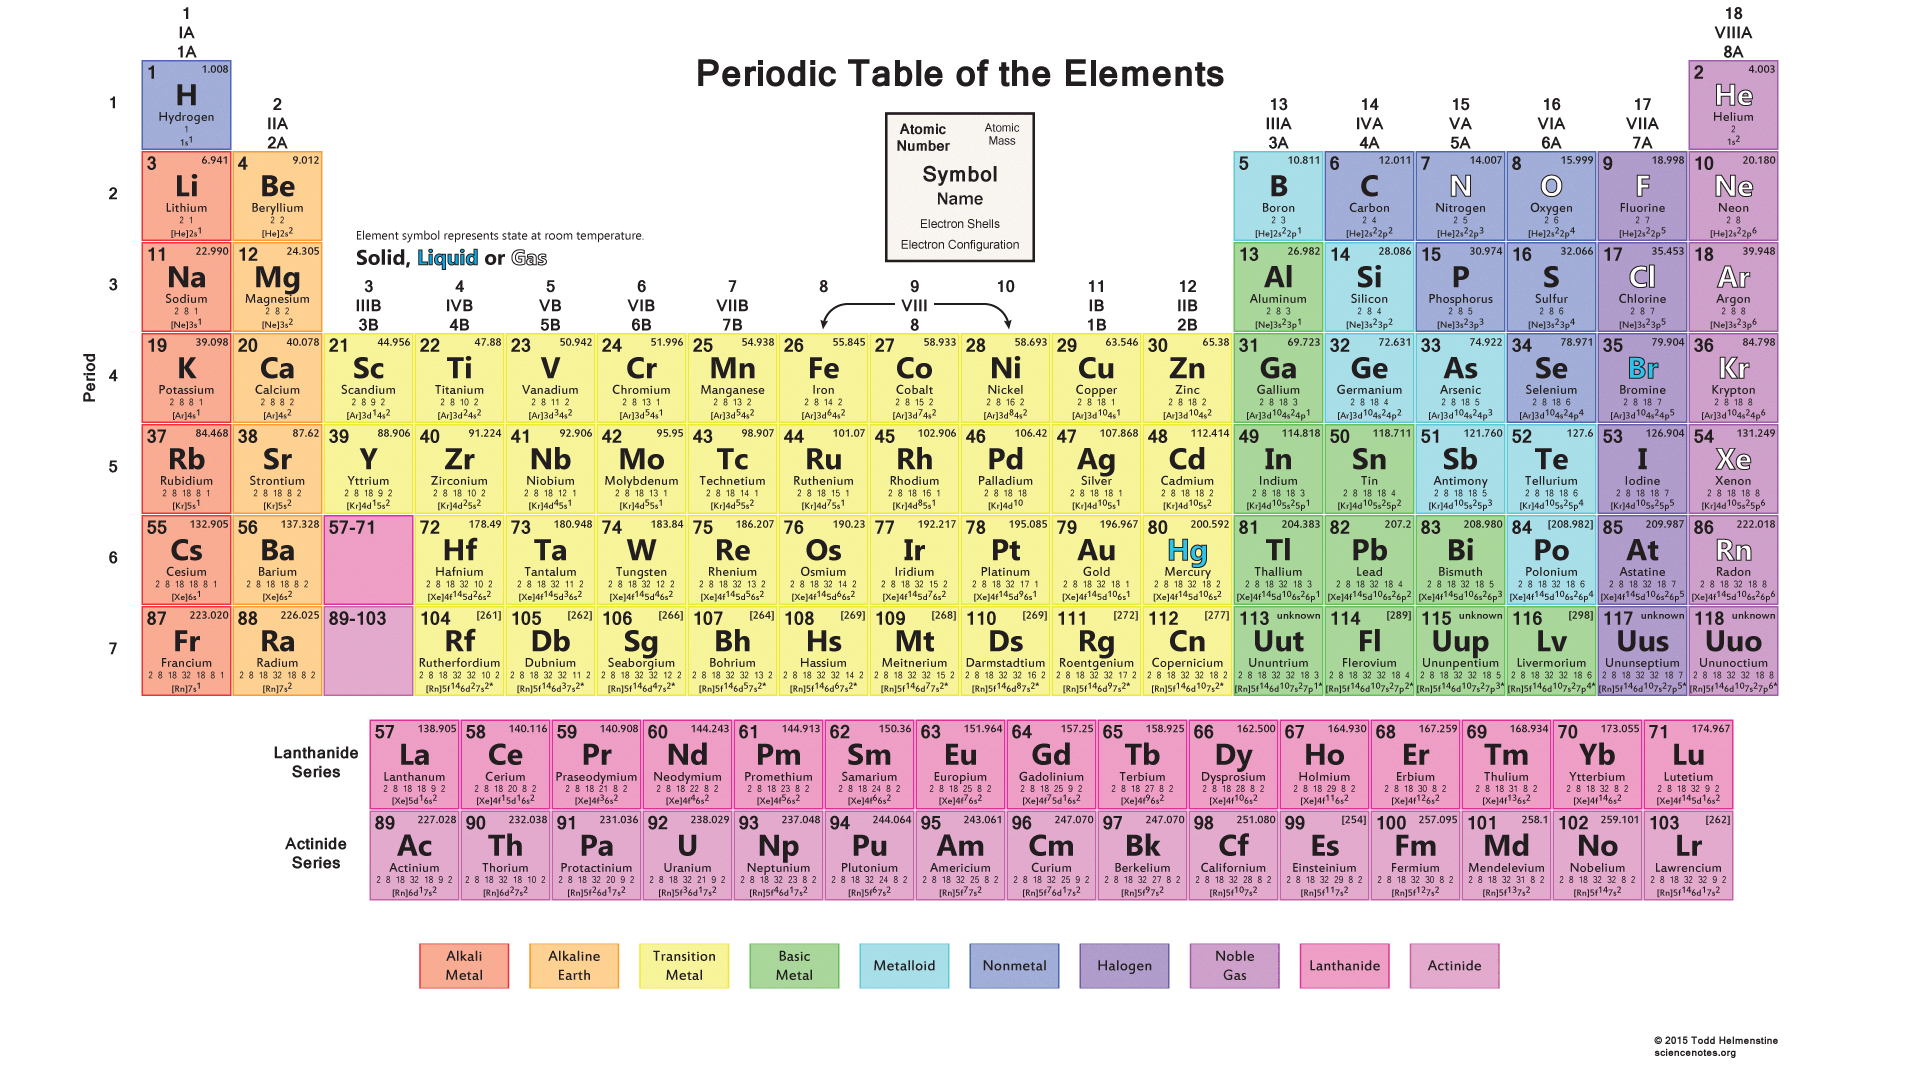 Electron configuration list google search organic pinterest this printable color periodic table chart is colored to separate by element groups each cell contains the elements atomic number symbol name and mass buycottarizona